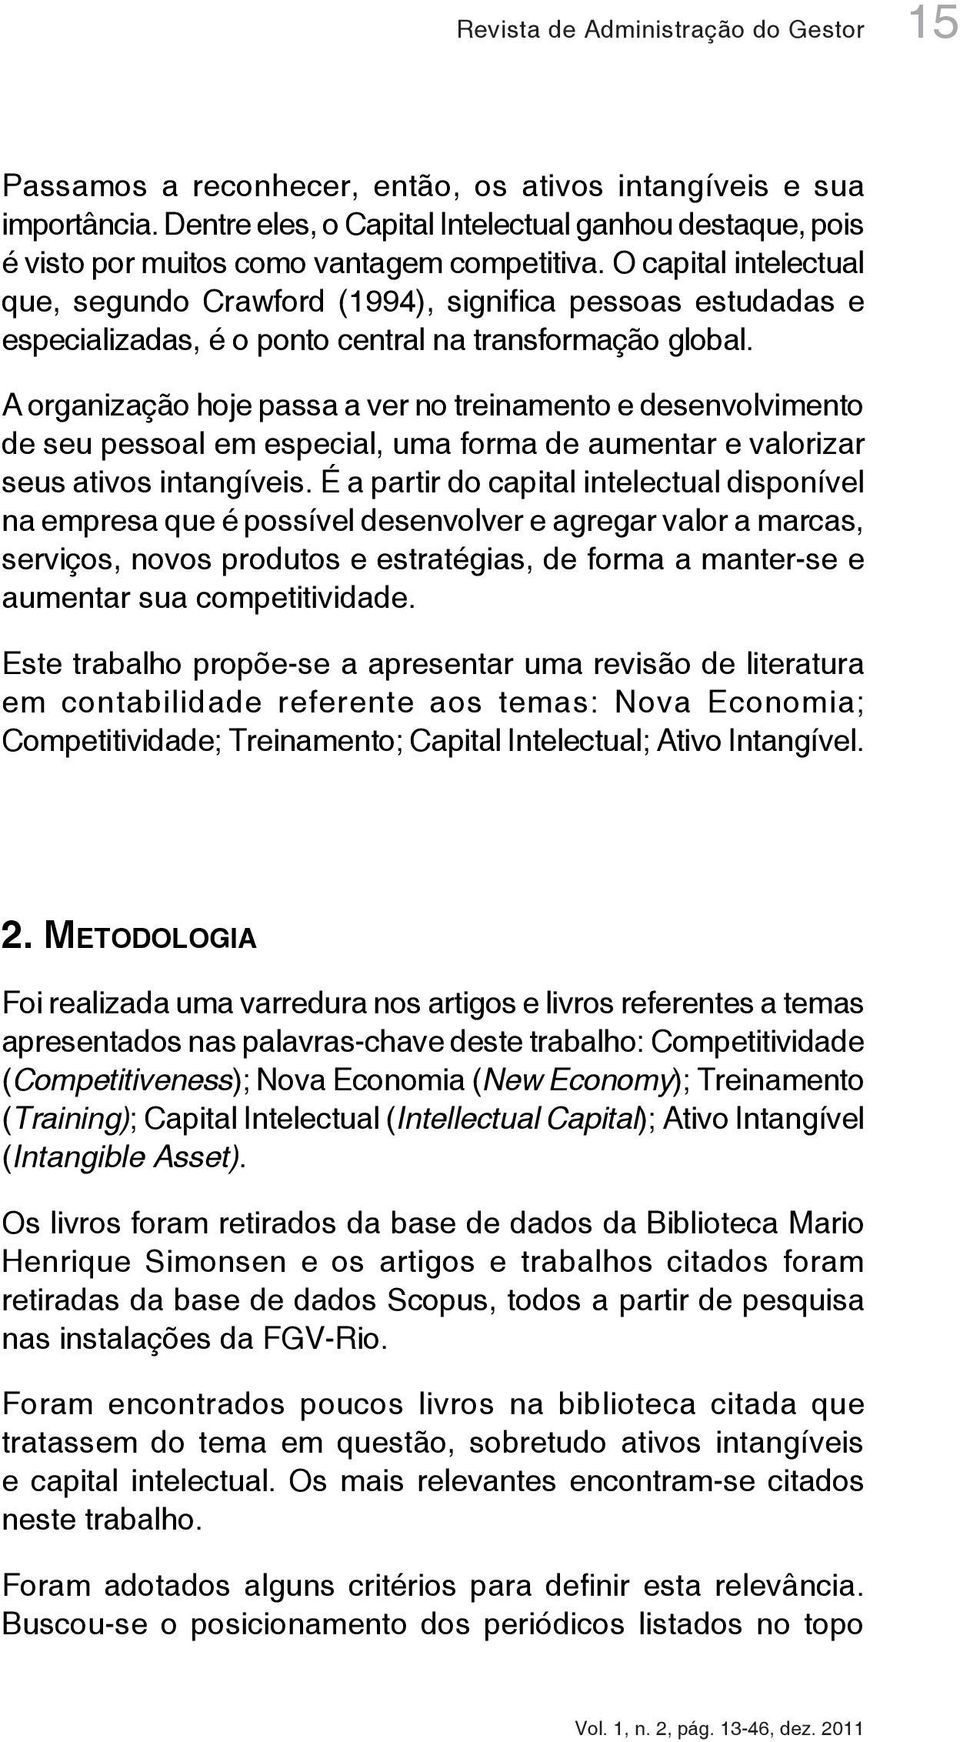 O capital intelectual que, segundo Crawford (1994), significa pessoas estudadas e especializadas, é o ponto central na transformação global.